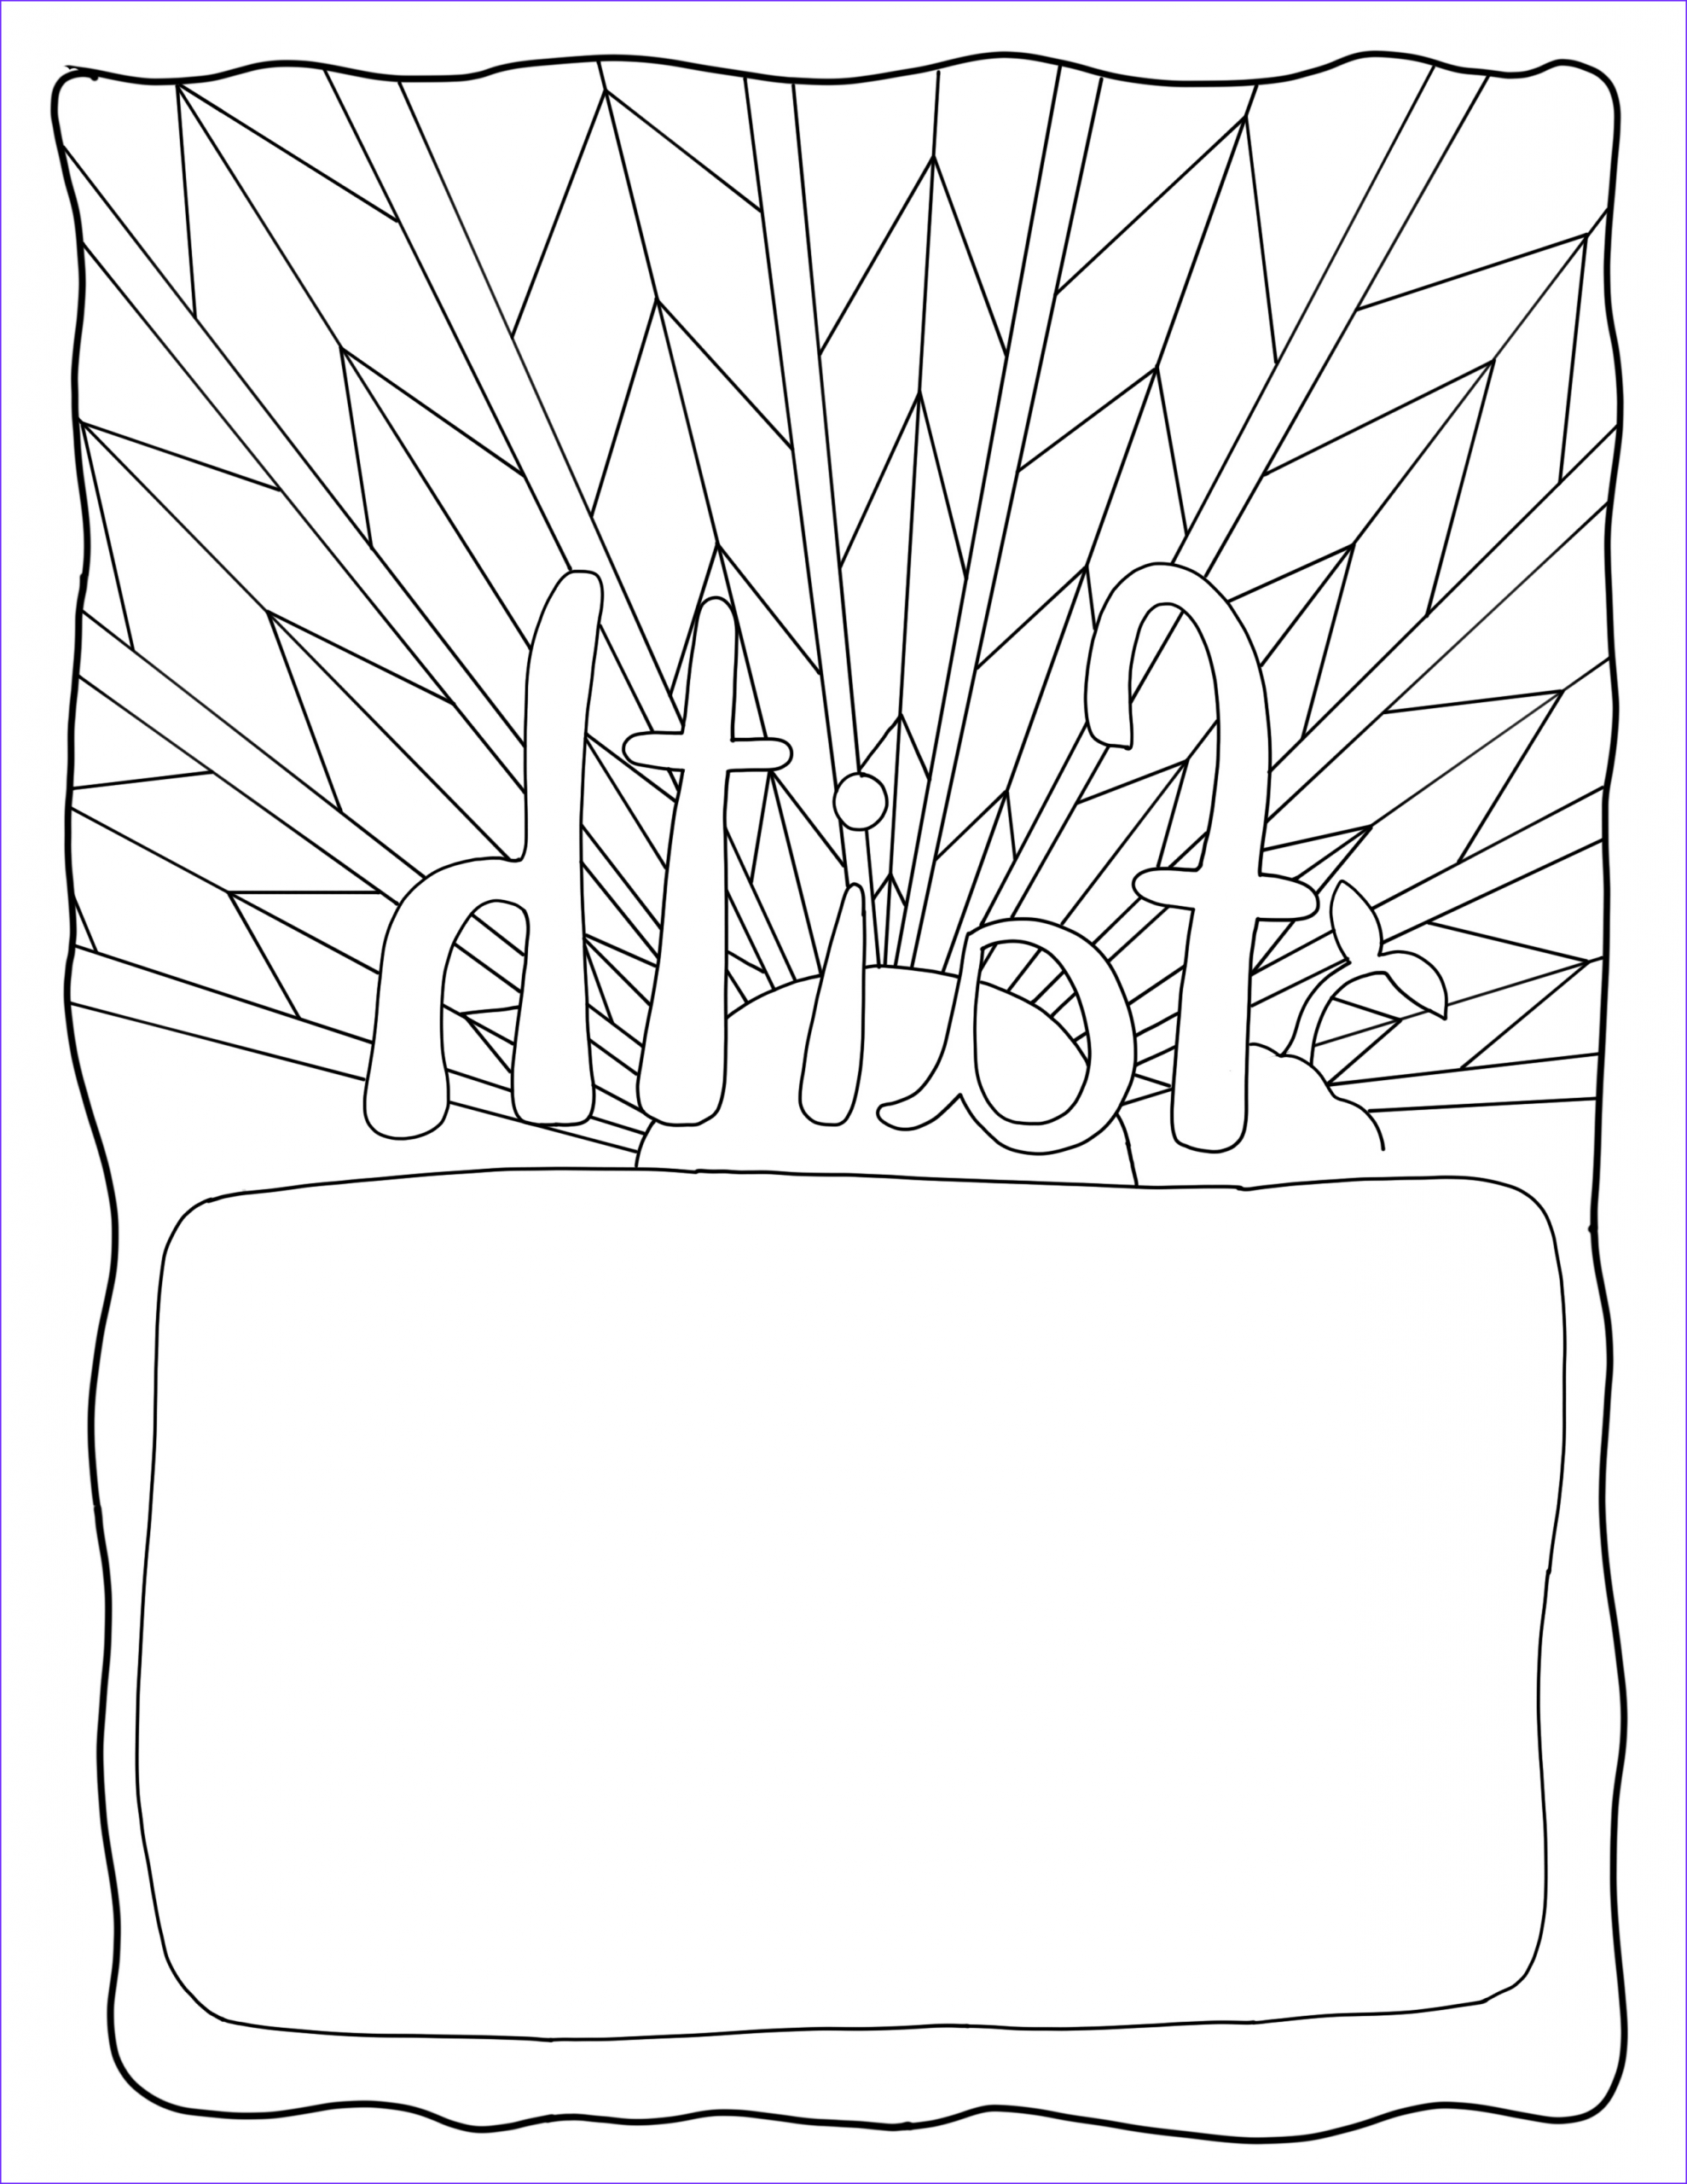 Conference Coloring Page Beautiful Photography 10 Coloring Pages for General Conference